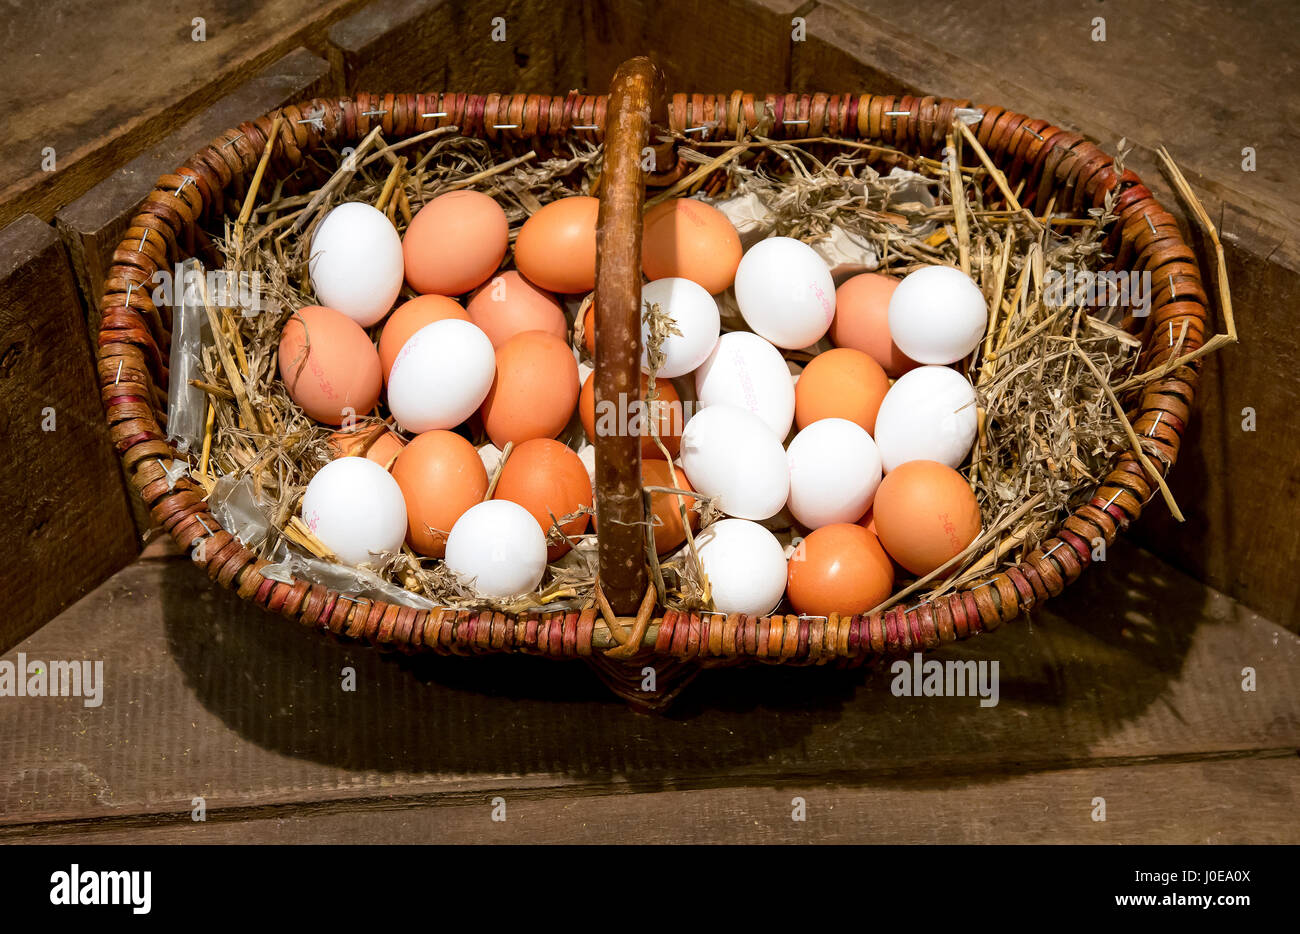 Brown and white eggs lying on straw in wicker basket for sale, Herten, Ruhr district, North Rhine-Westphalia, Germany Stock Photo